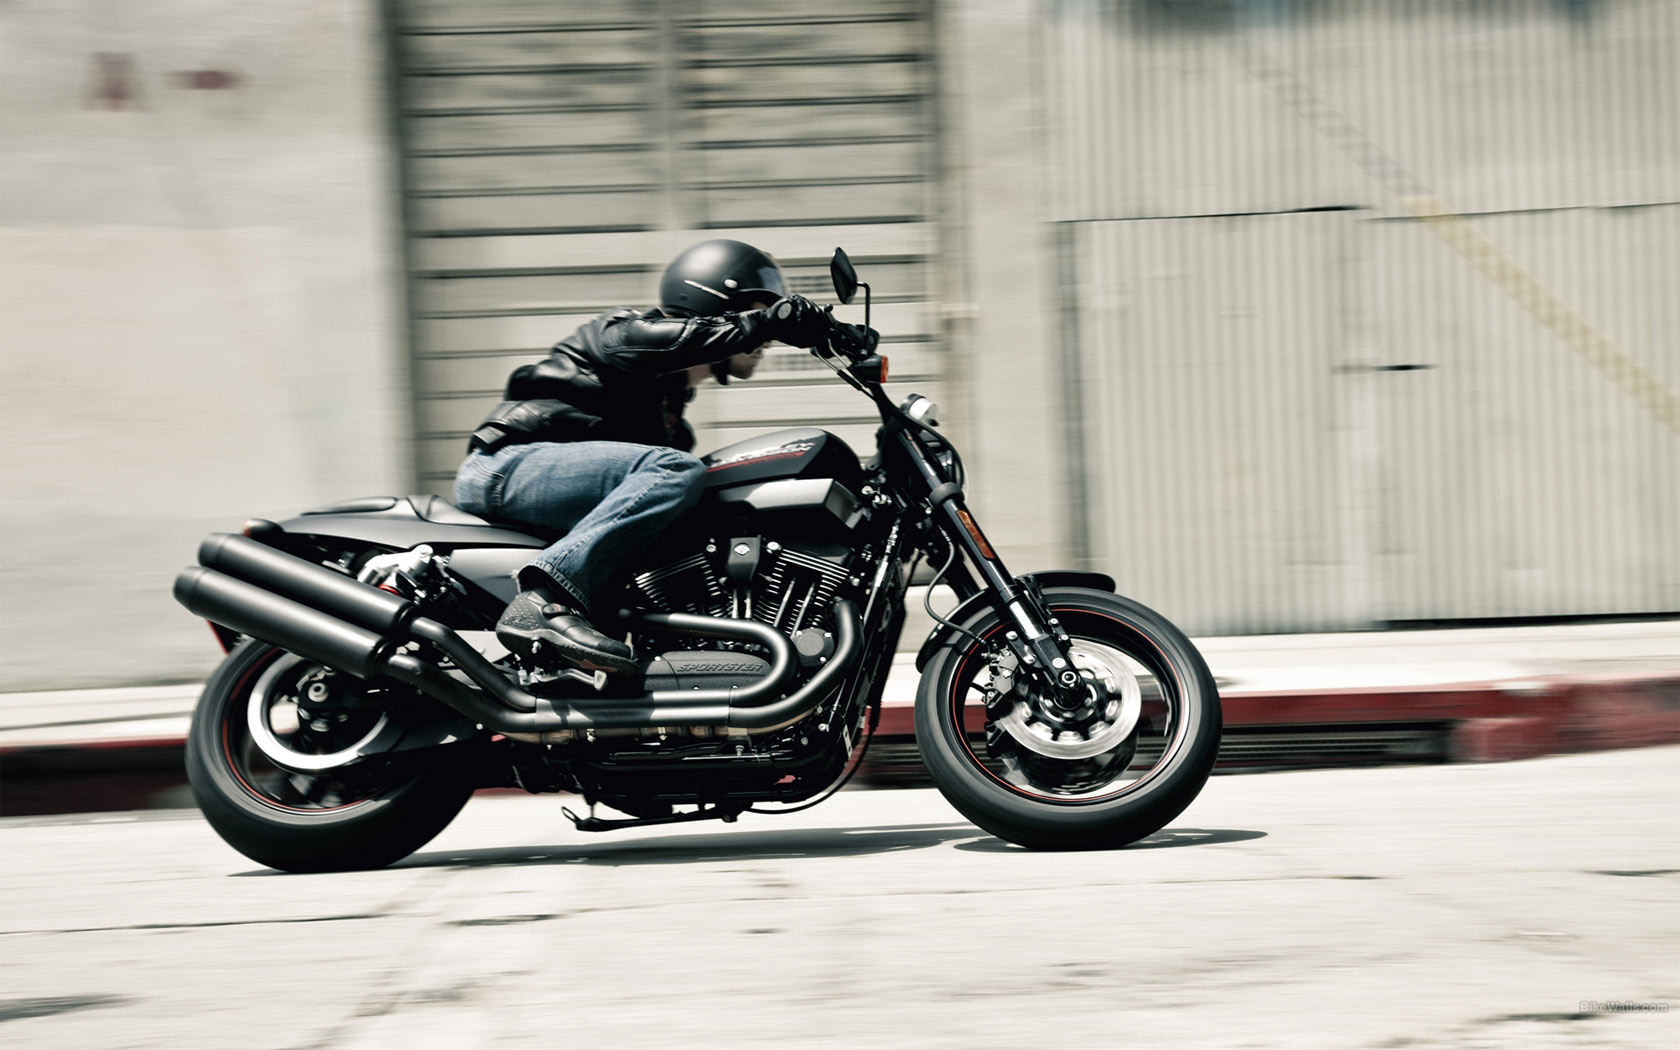 Harley Davidson Stock: Harley-Davidson Will Pay You To Buy Its Stock